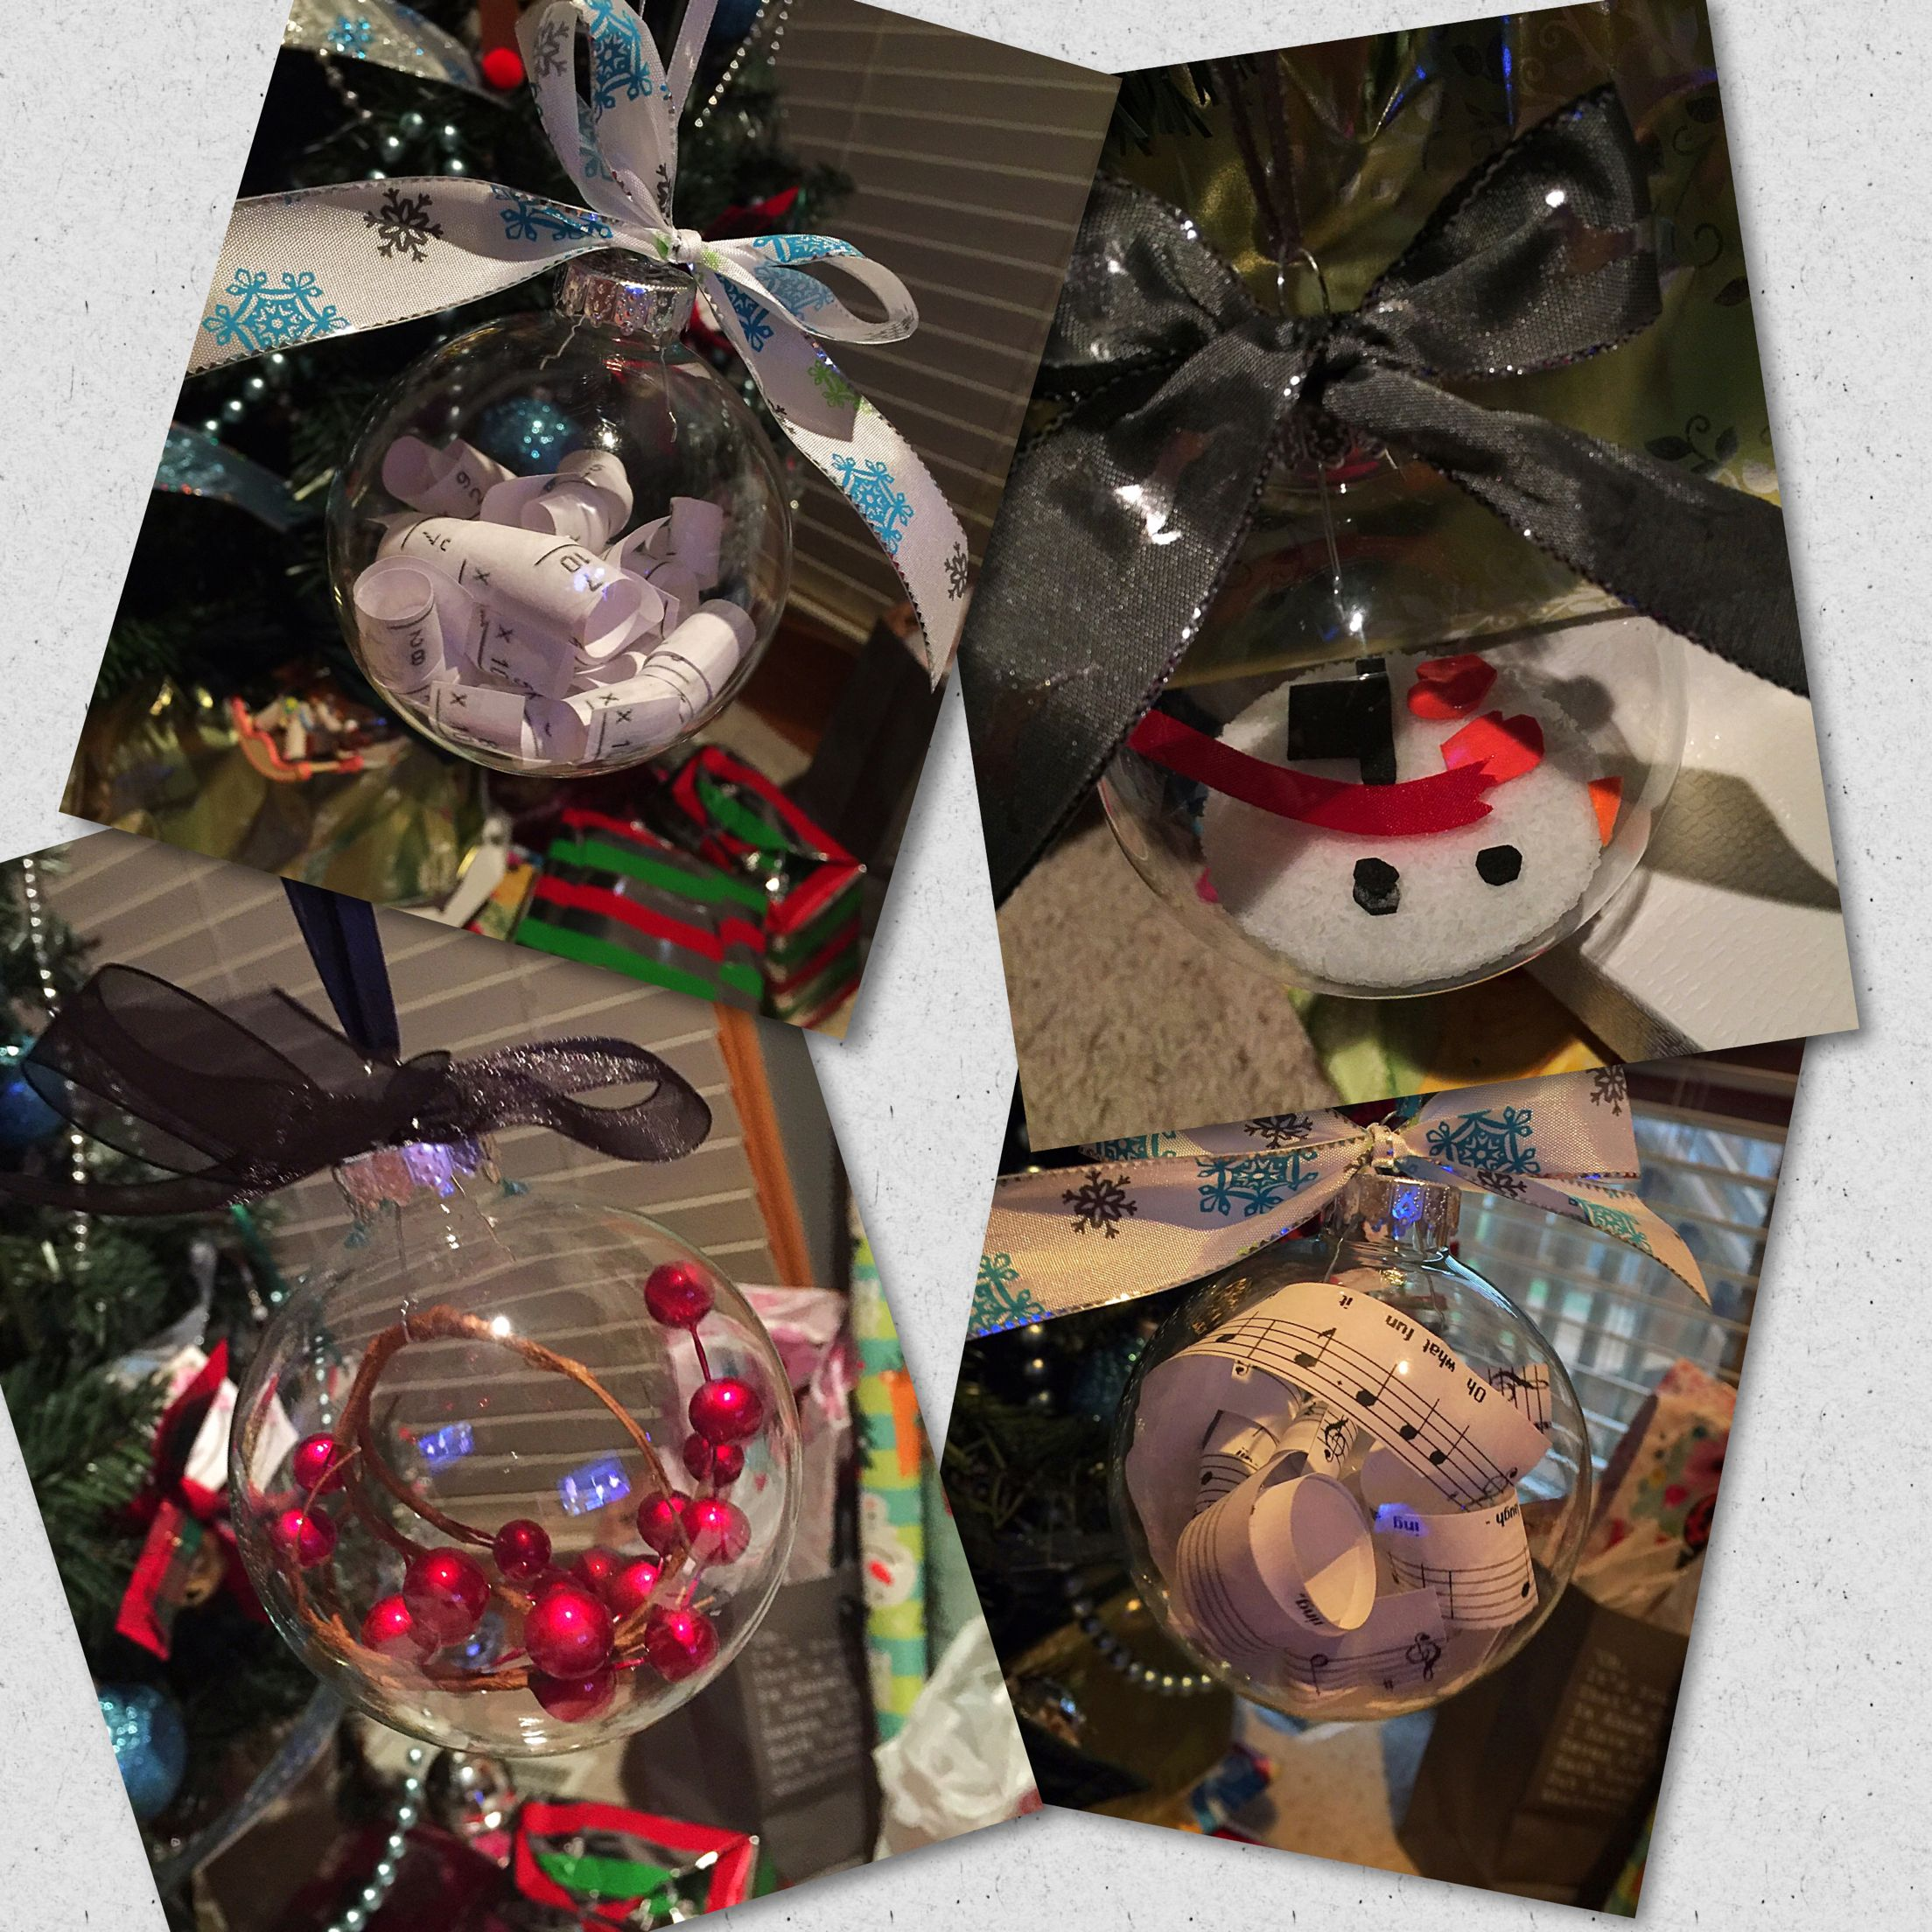 Cute homemade glass ornaments for gifts.